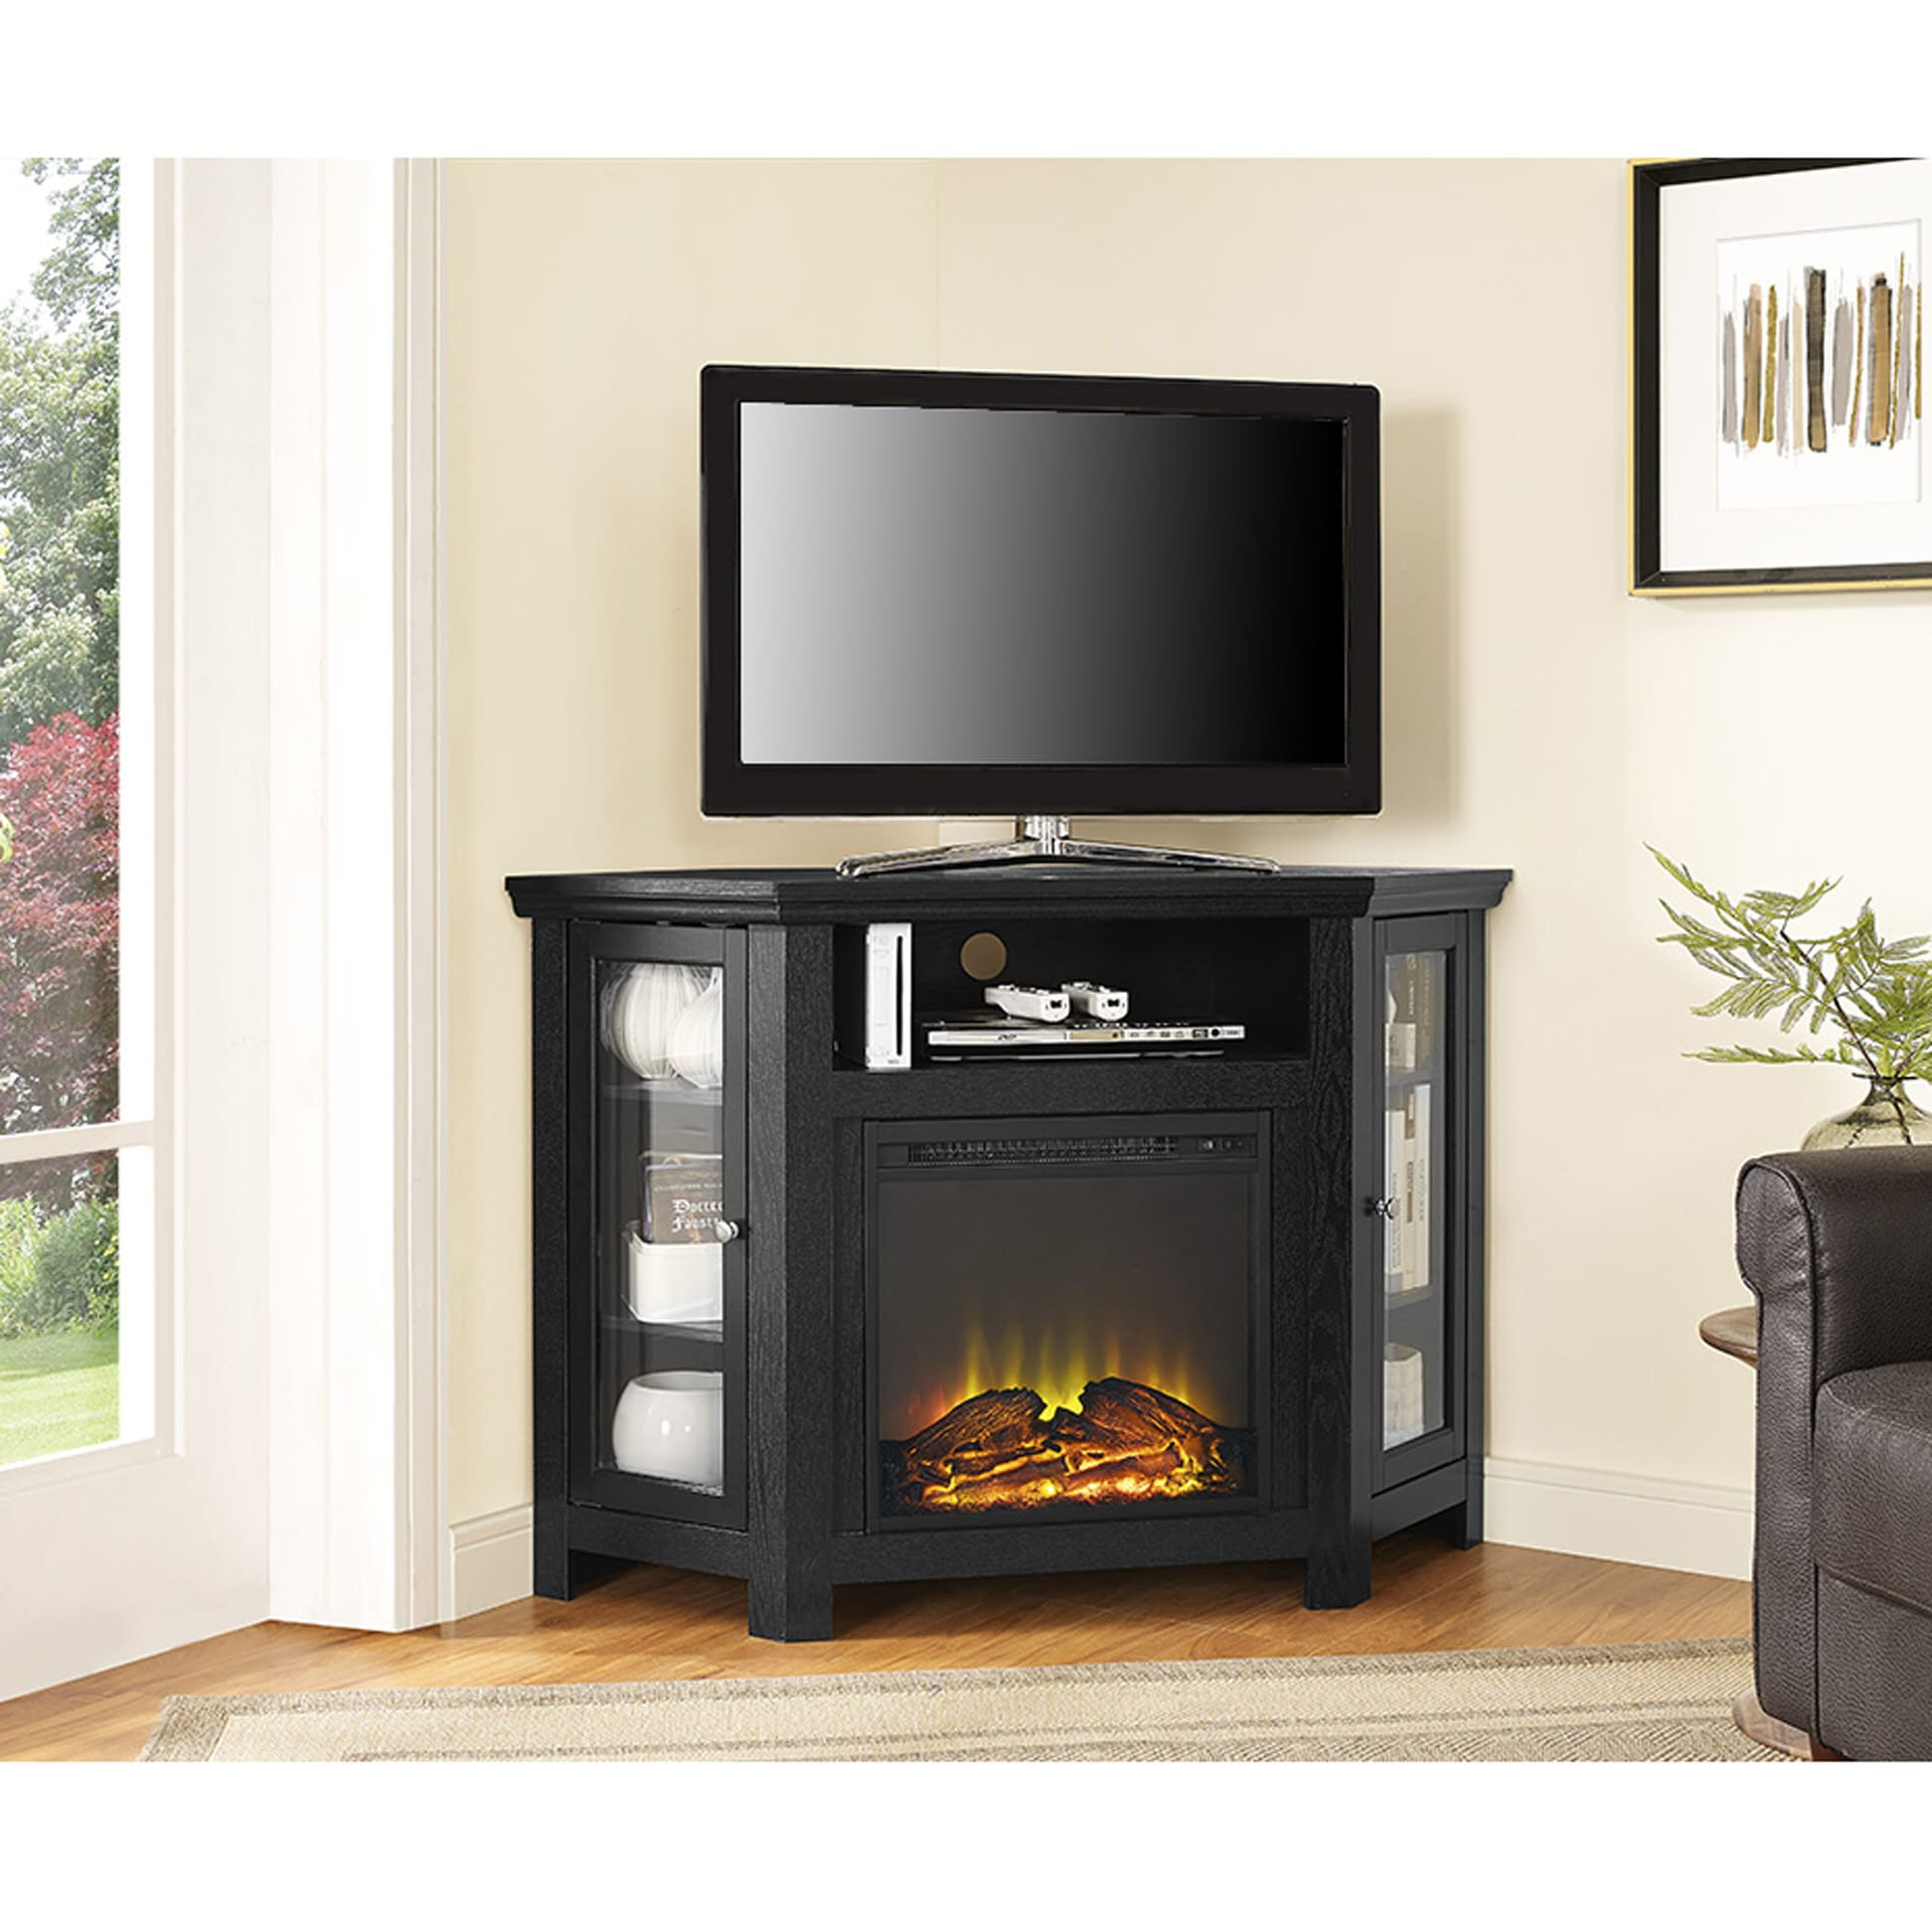 Jackson 48 Inch Corner Fireplace TV Stand - Black by ...